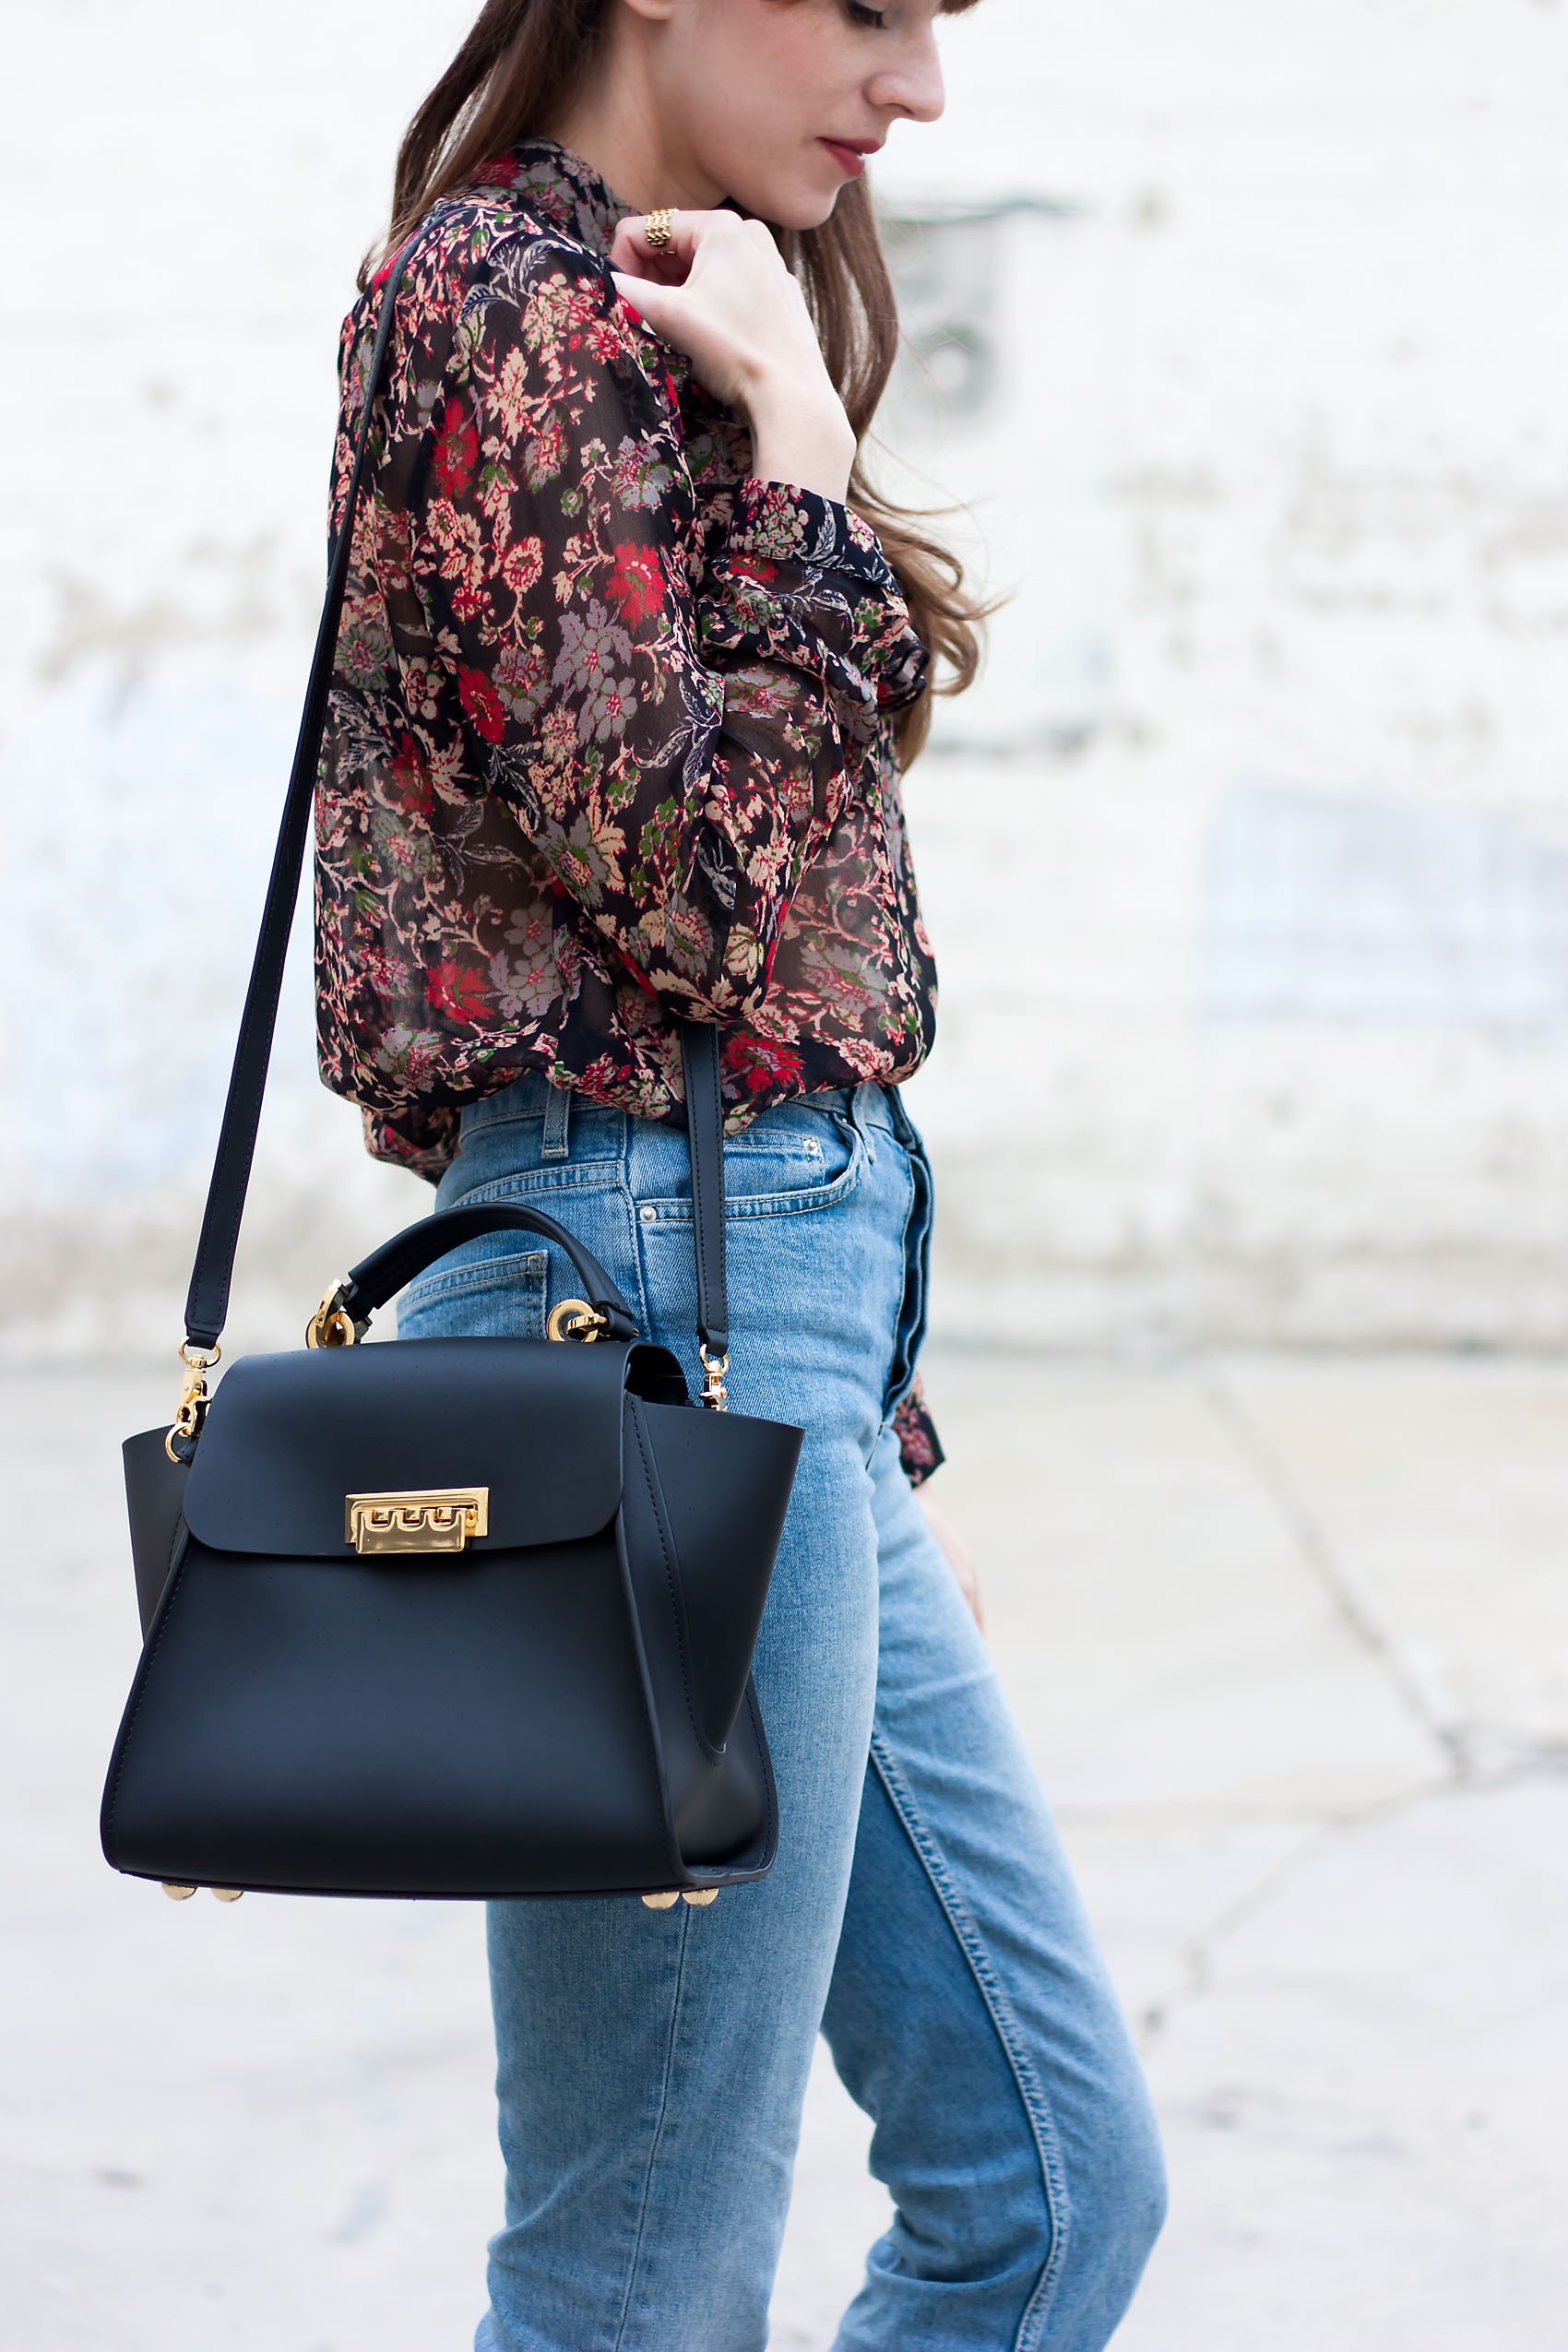 How To Style Mom Jeans For Fall Jeans And A Teacup